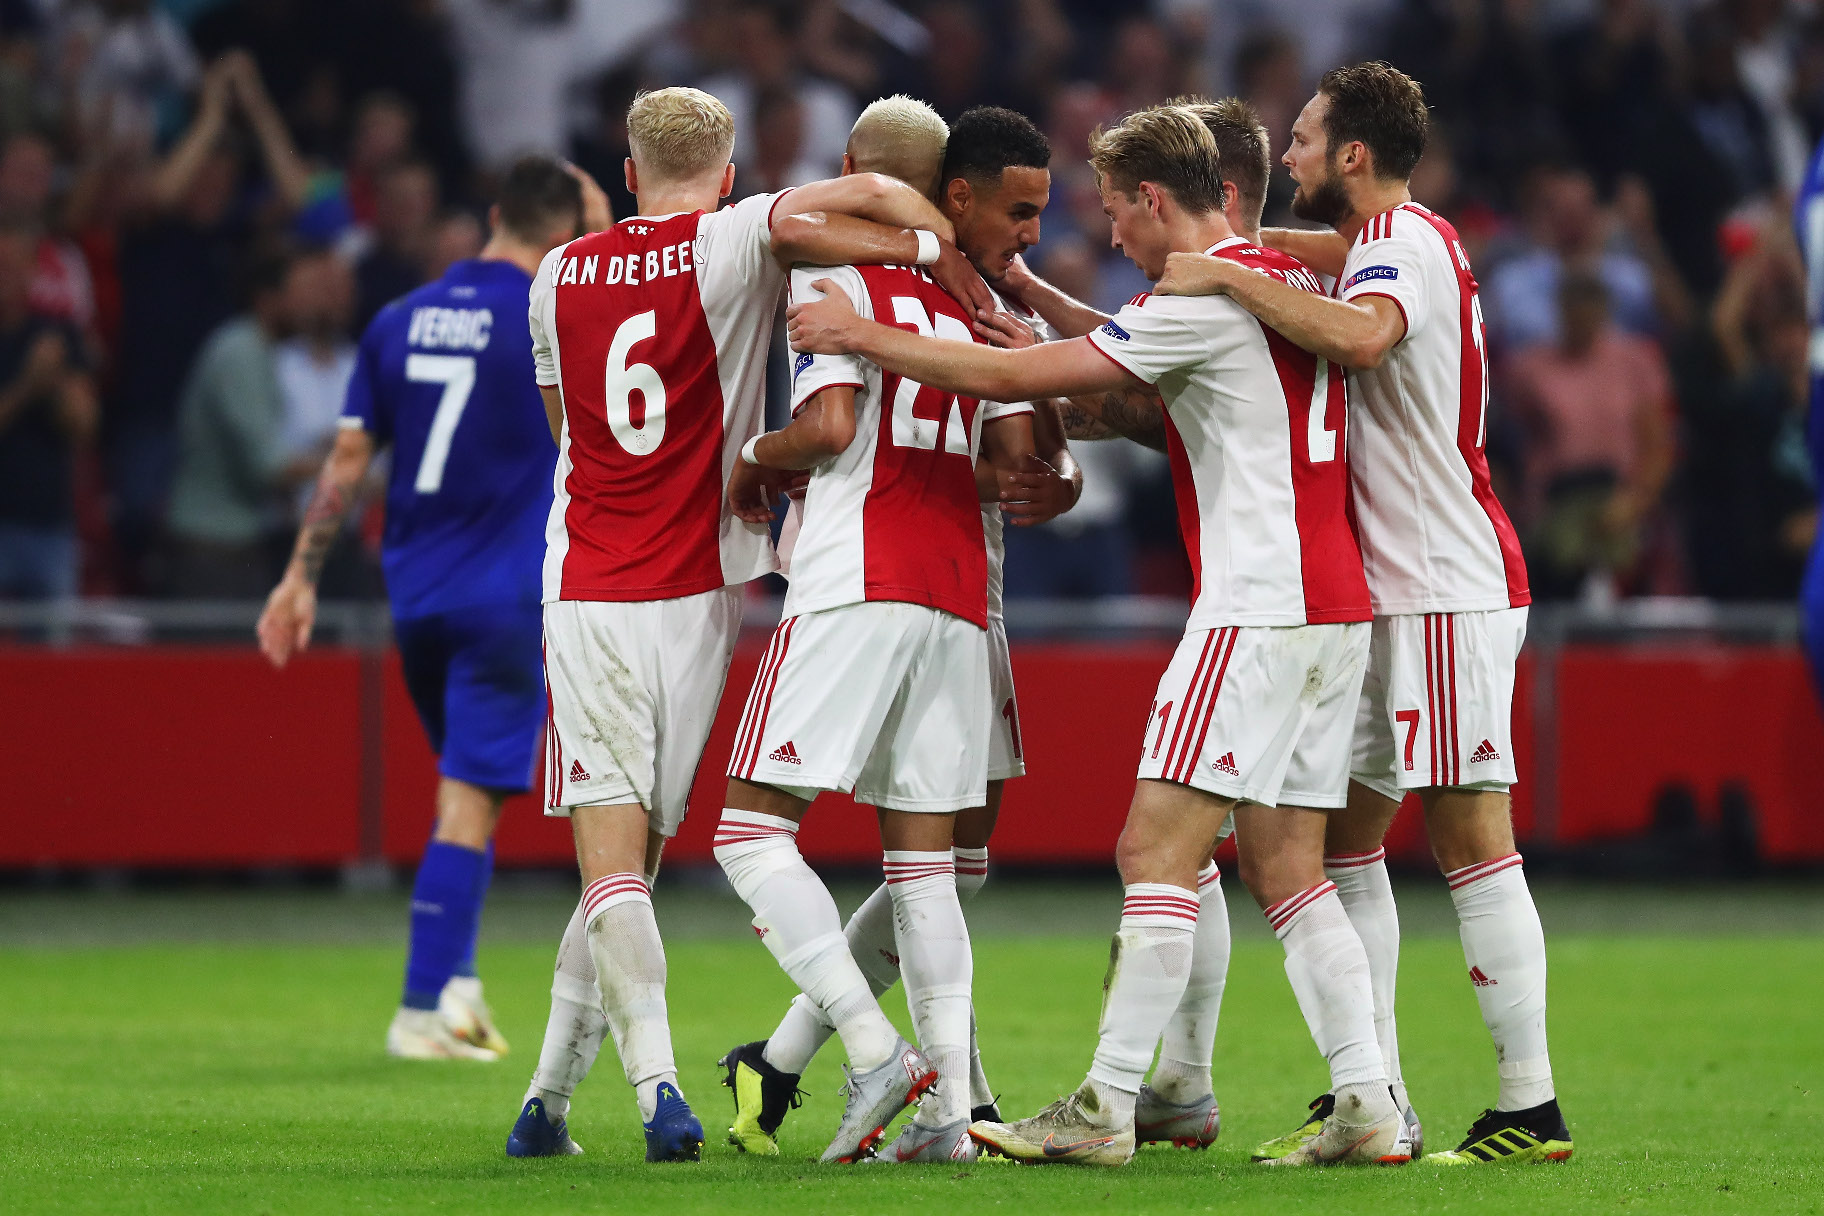 AMSTERDAM, NETHERLANDS - AUGUST 22:  Hakim Ziyech of Ajax celebrates scoring his teams second goal of the game with team mates during the UEFA Champions League Play-off 1st leg match between Ajax and Dynamo Kiev held at Johan Cruyff Arena on August 22, 2018 in Amsterdam, Netherlands.  (Photo by Dean Mouhtaropoulos/Getty Images)